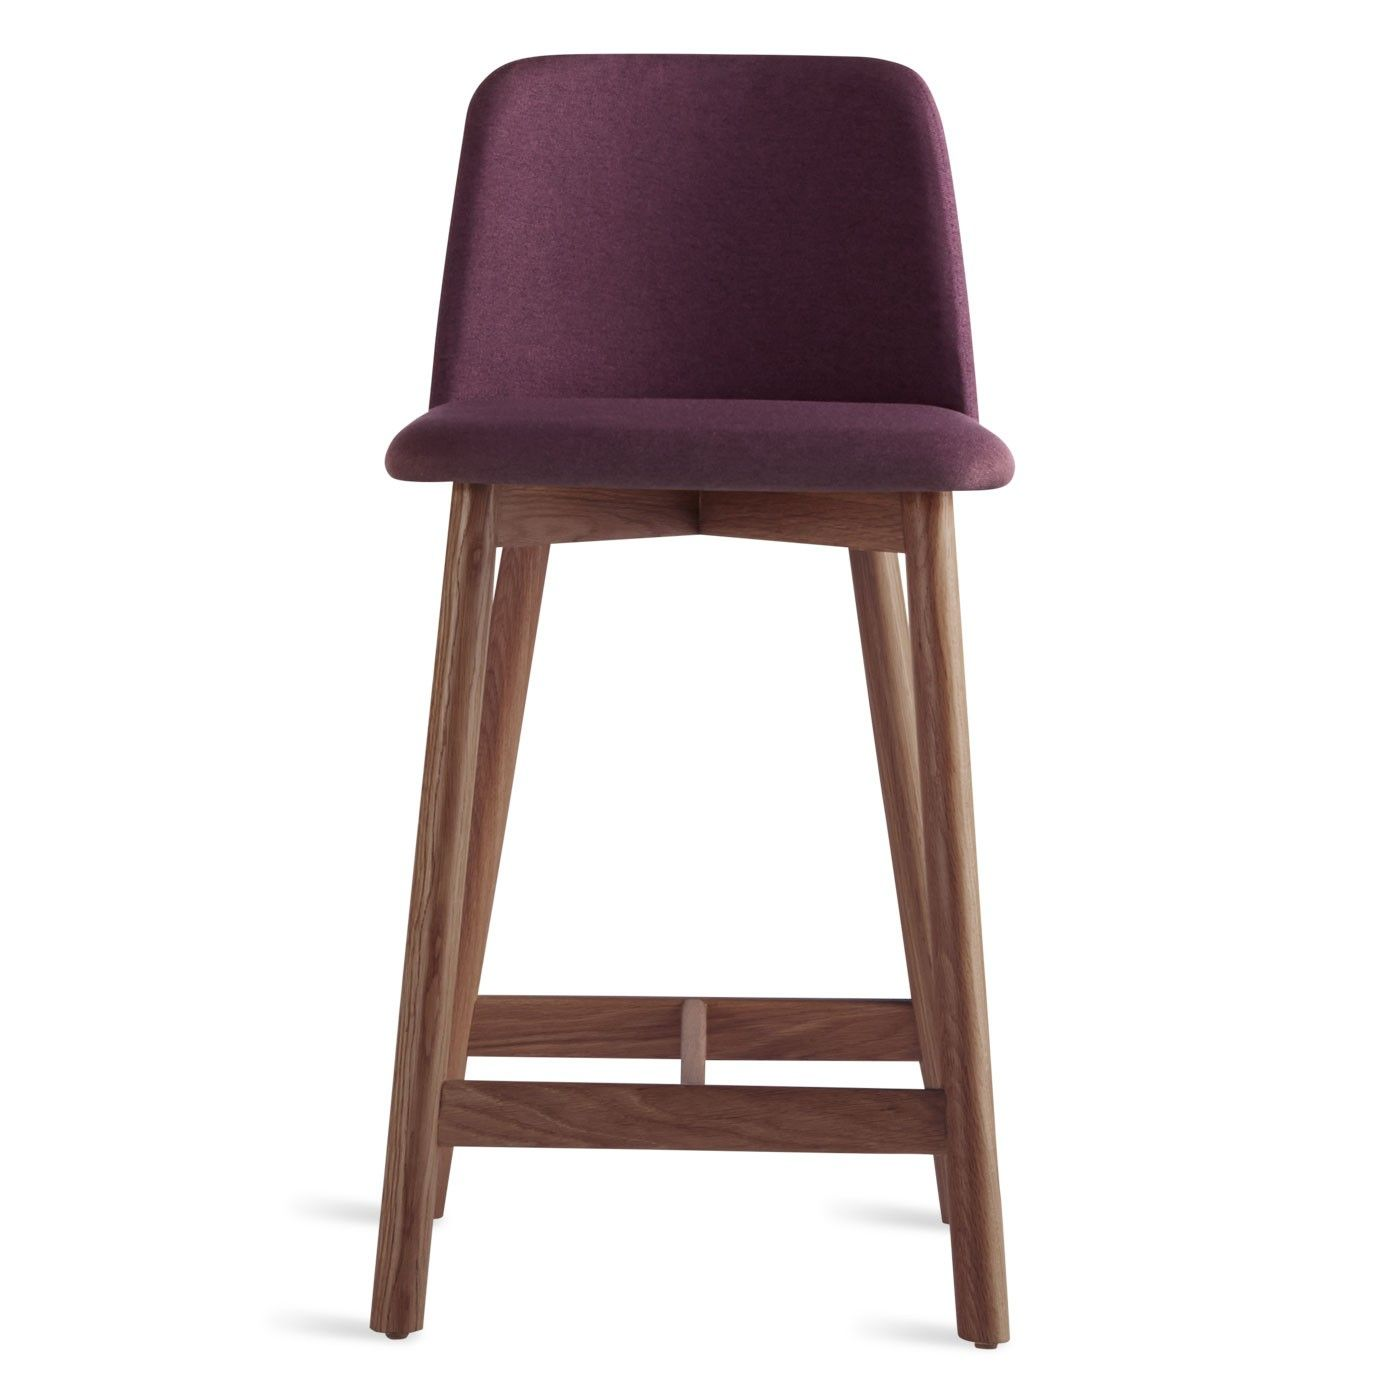 Magnificent Chip Counter Stool Kitchen Dining Leather Counter Andrewgaddart Wooden Chair Designs For Living Room Andrewgaddartcom